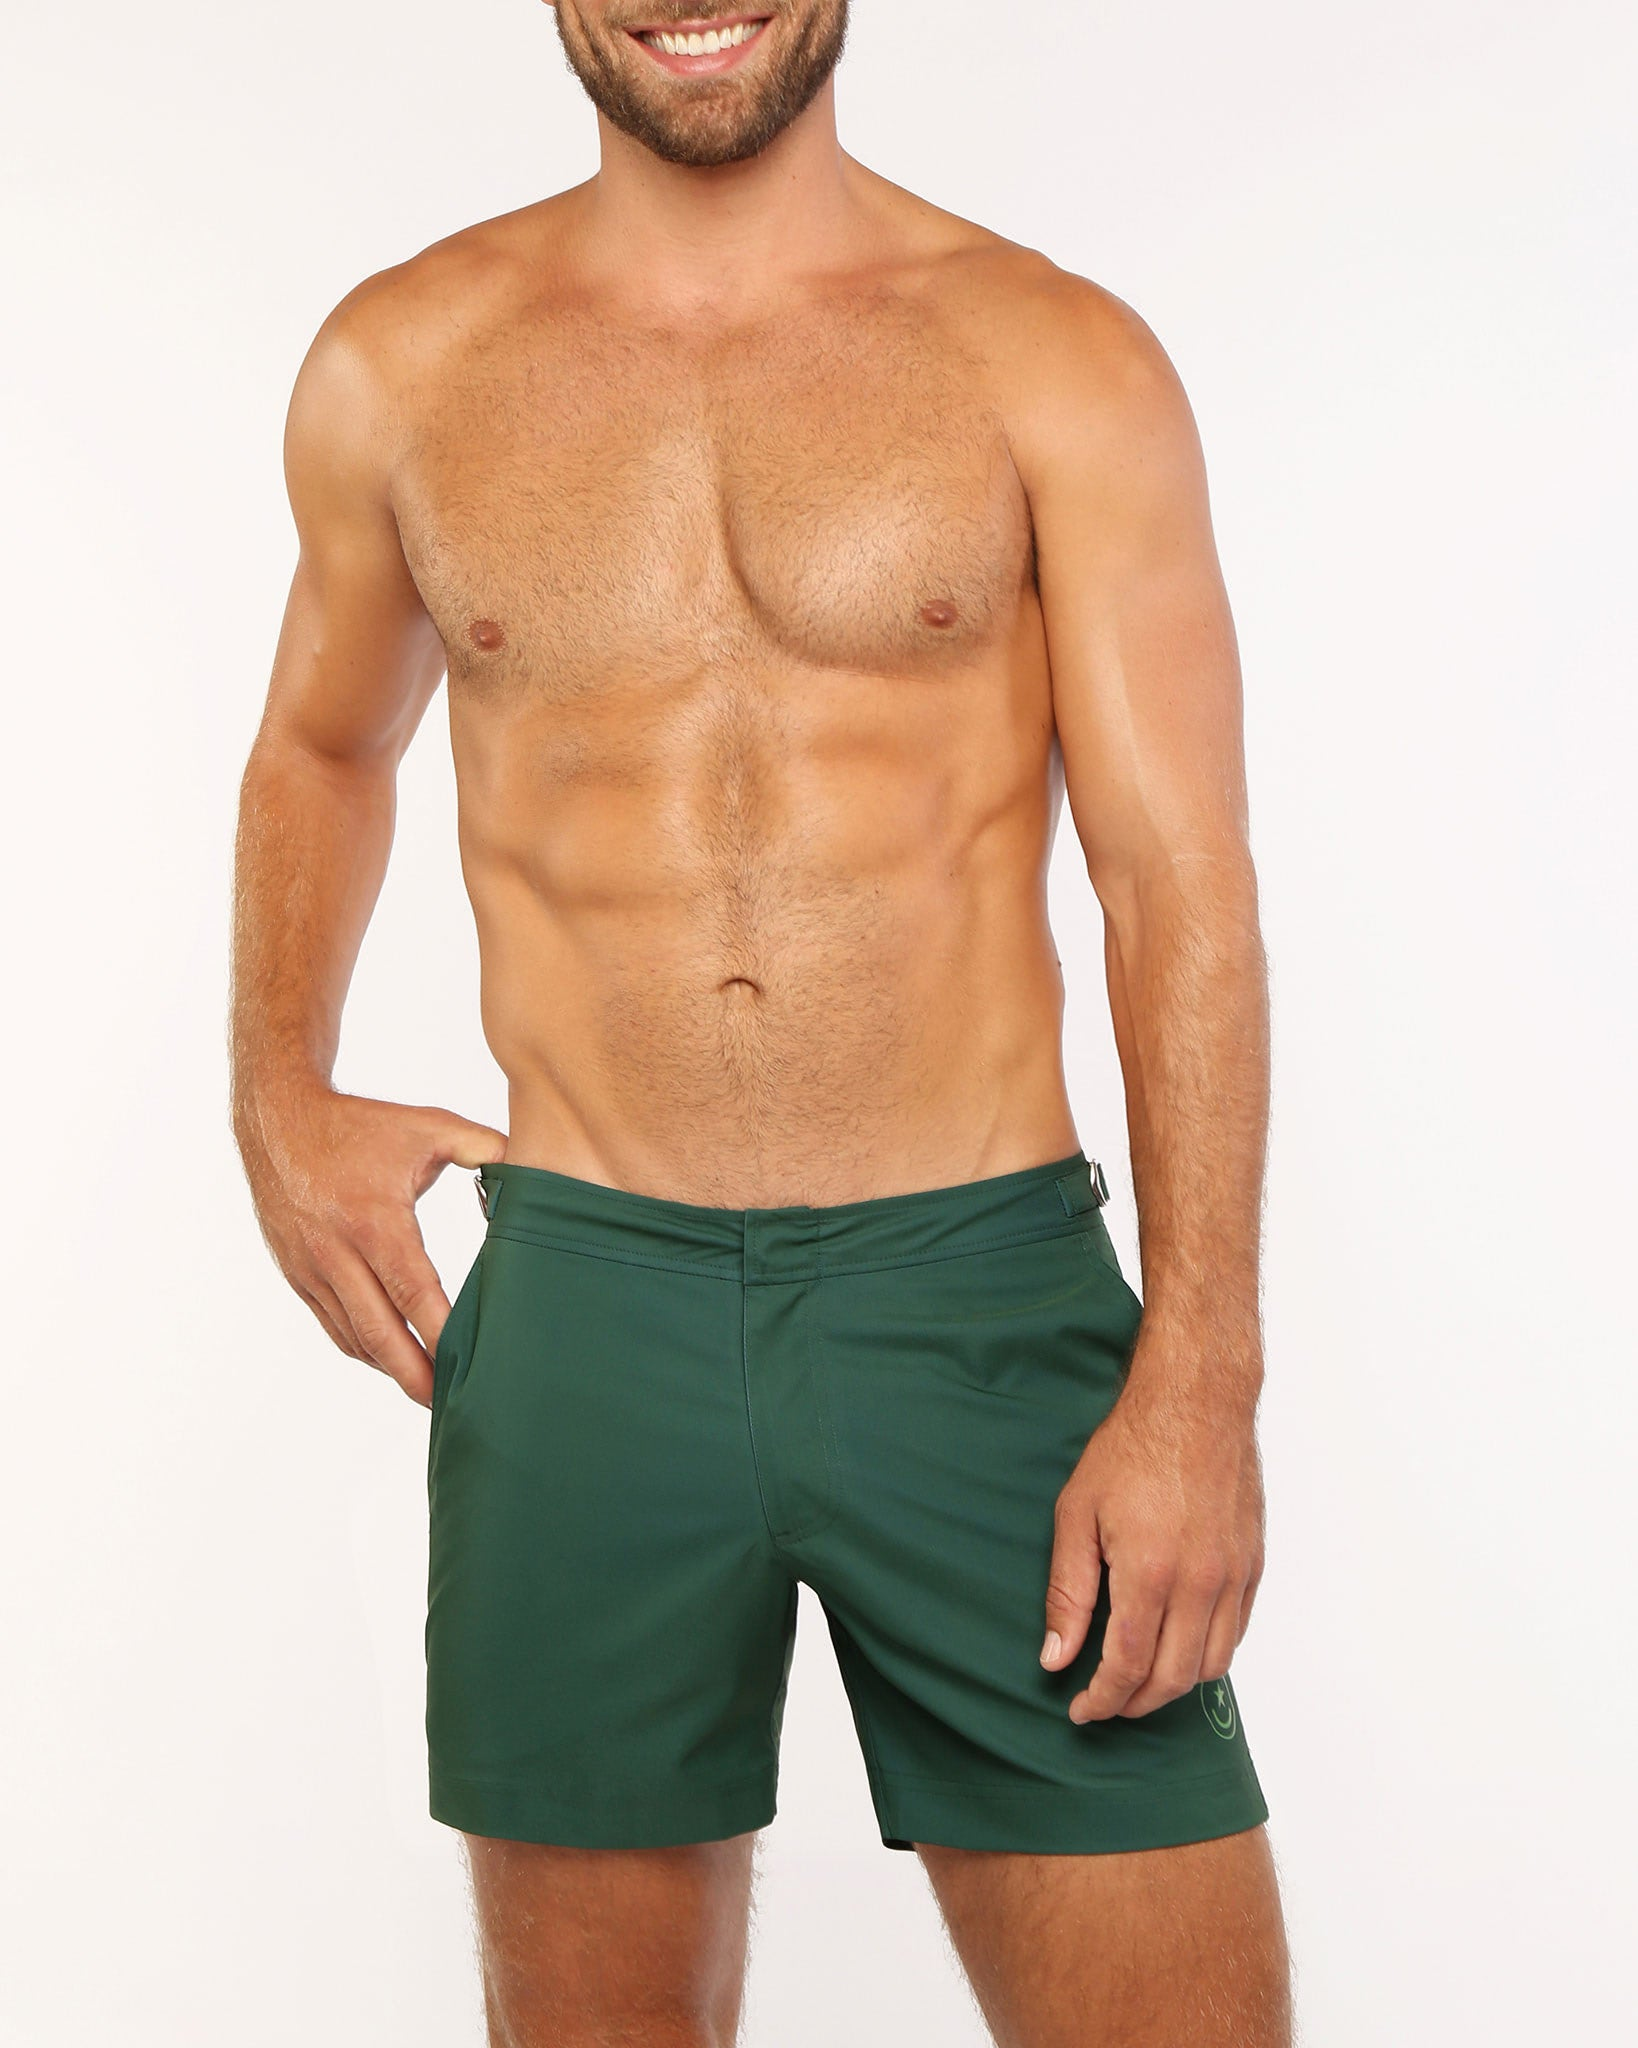 EVERGREEN Tailored Shorts Bang Clothes Men Swimwear Swimsuits